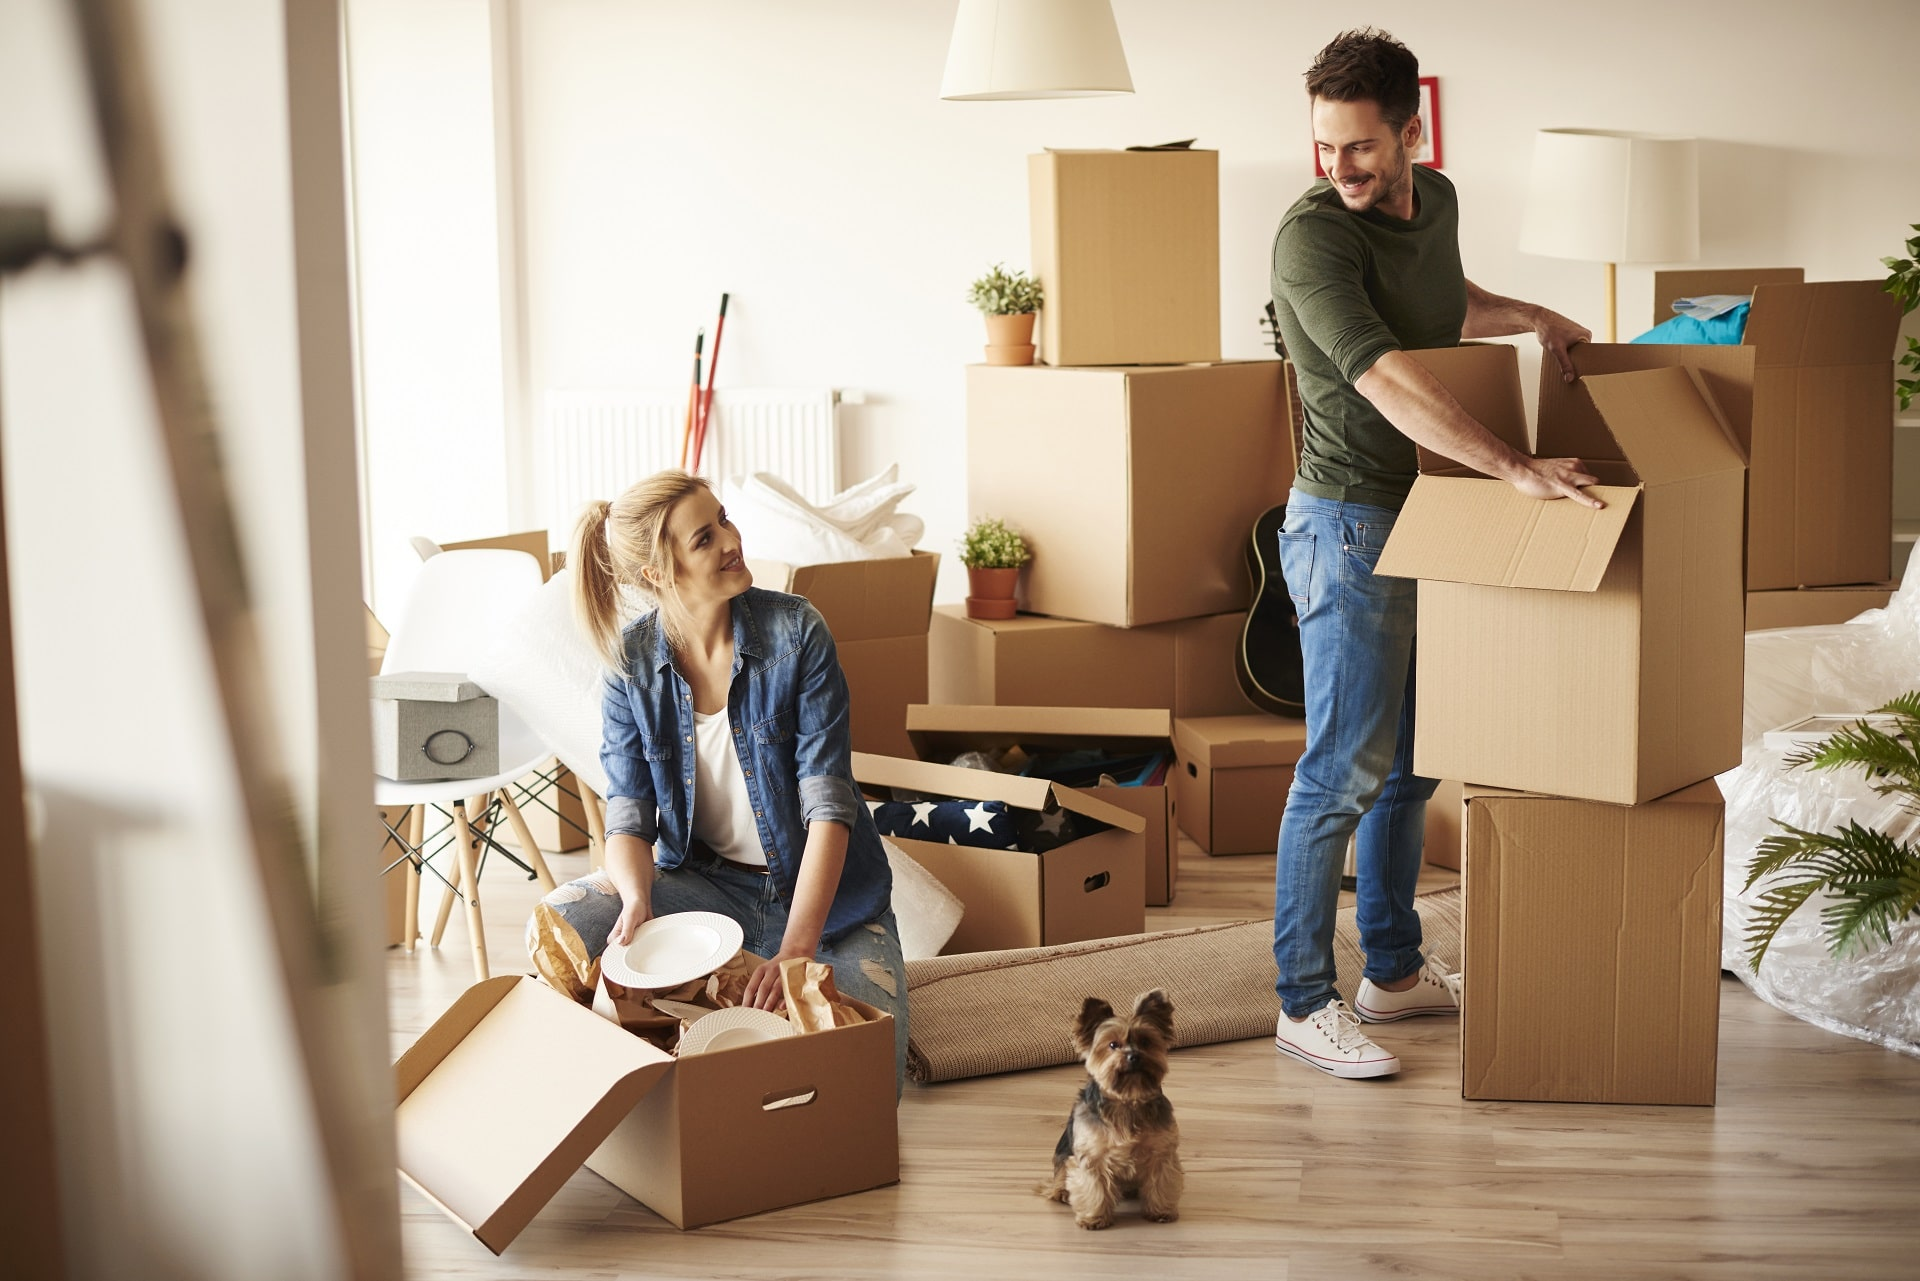 Preparing Your Move This Pros & Cons Of Relocating